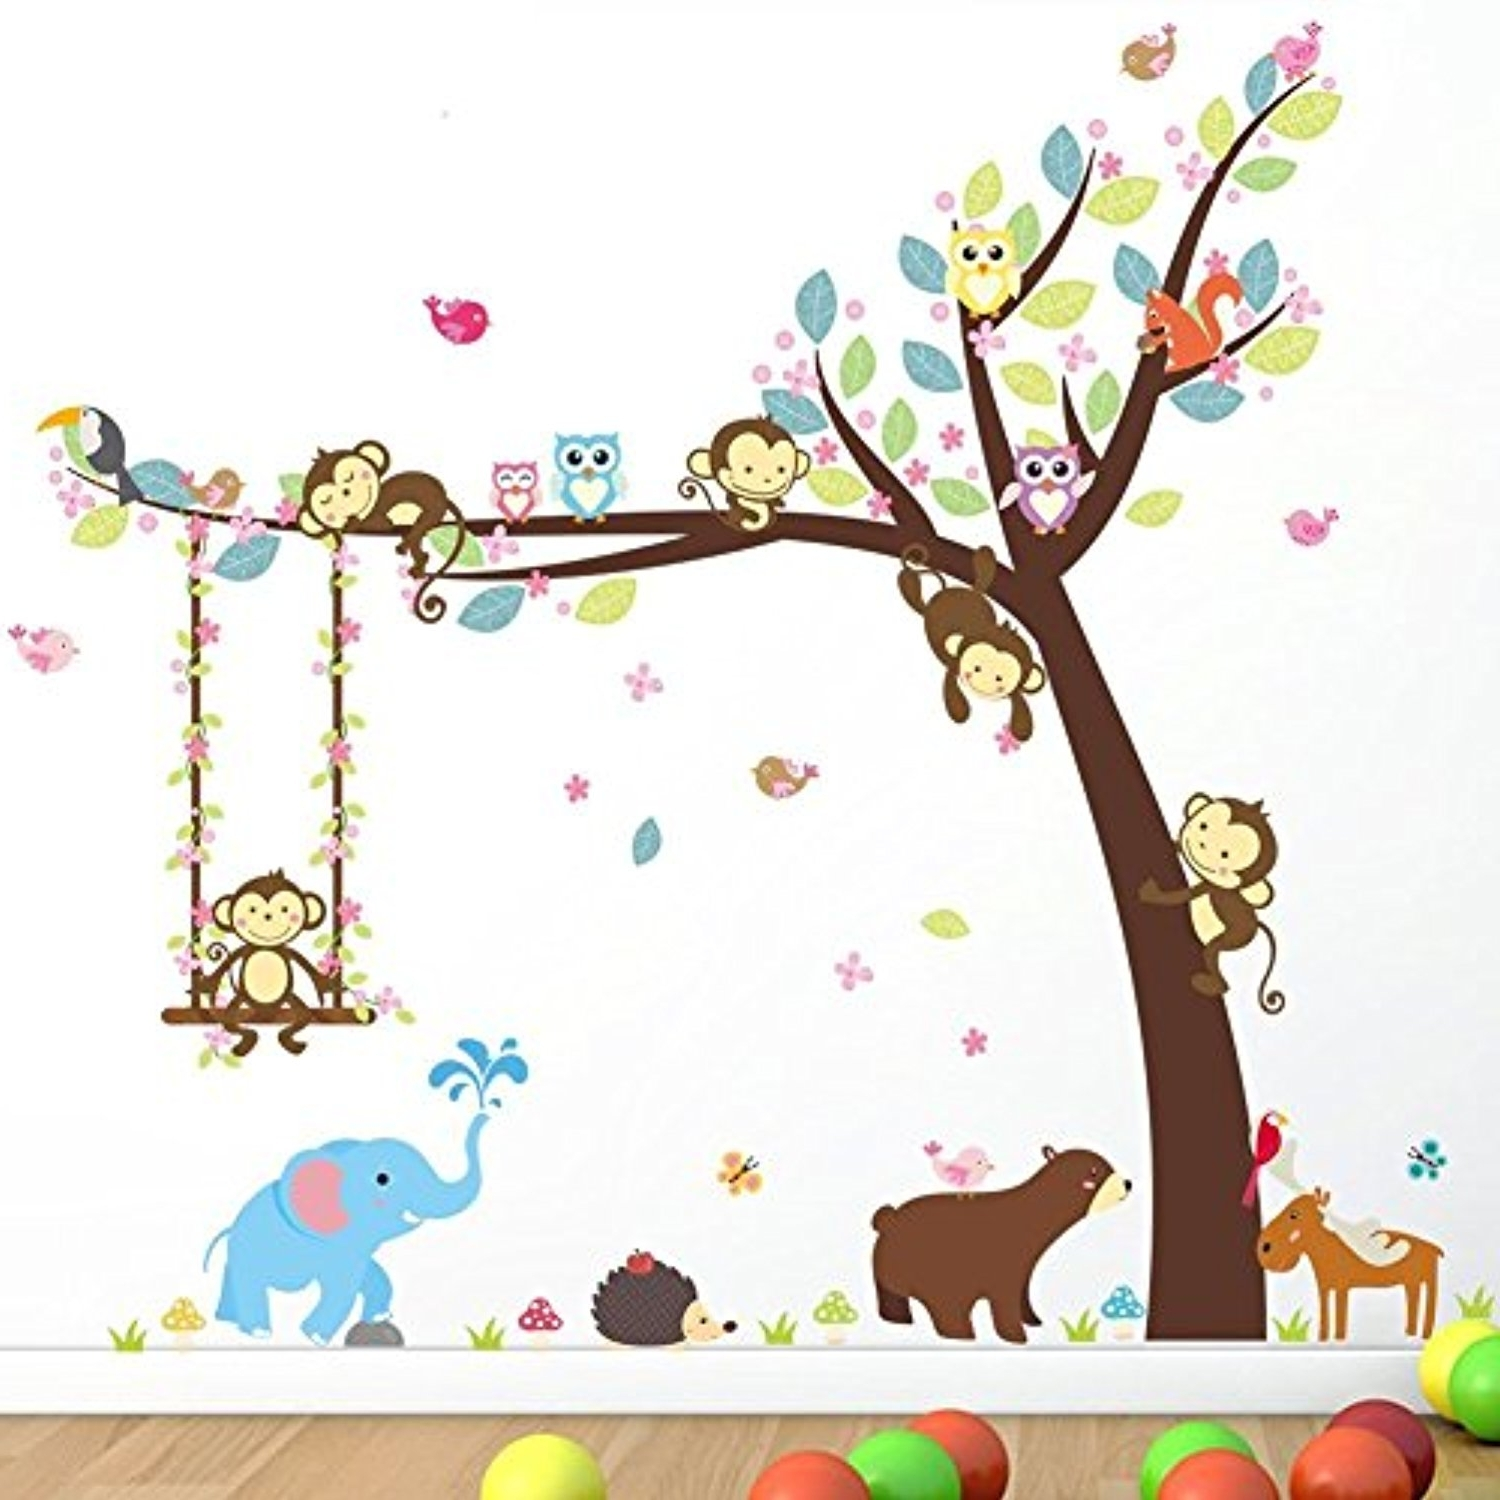 Most Popular Children Wall Art With Regard To Animoeco Animal Wall Stickers Monkey Bear Owls Elephant Jungle (View 12 of 15)